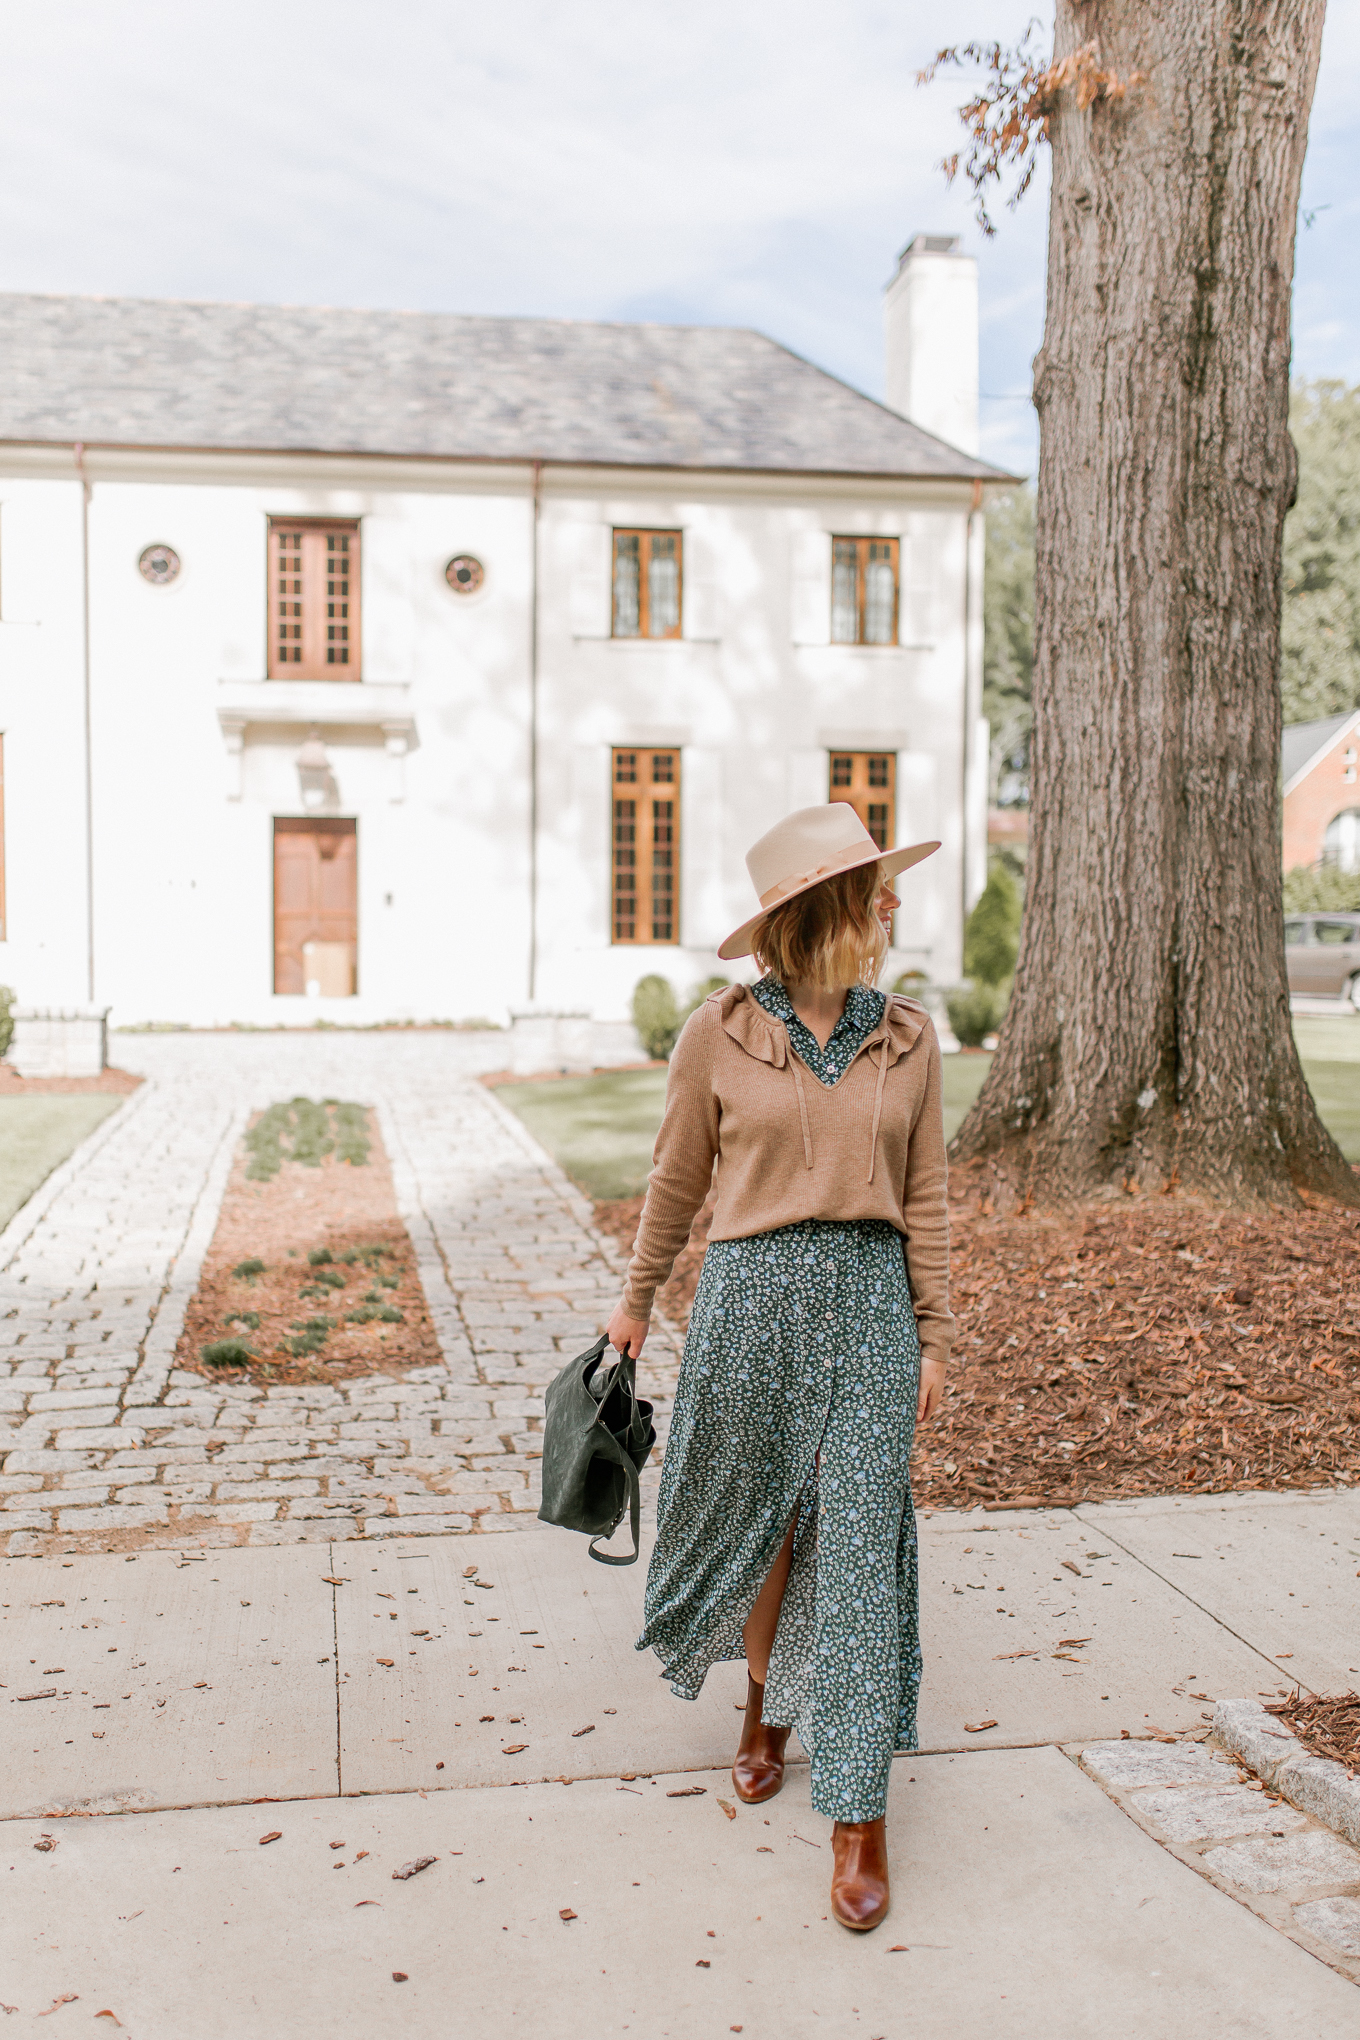 How to Style Maxi Dresses for Fall | Channeling My Inner Beth Dutton from Yellowstone